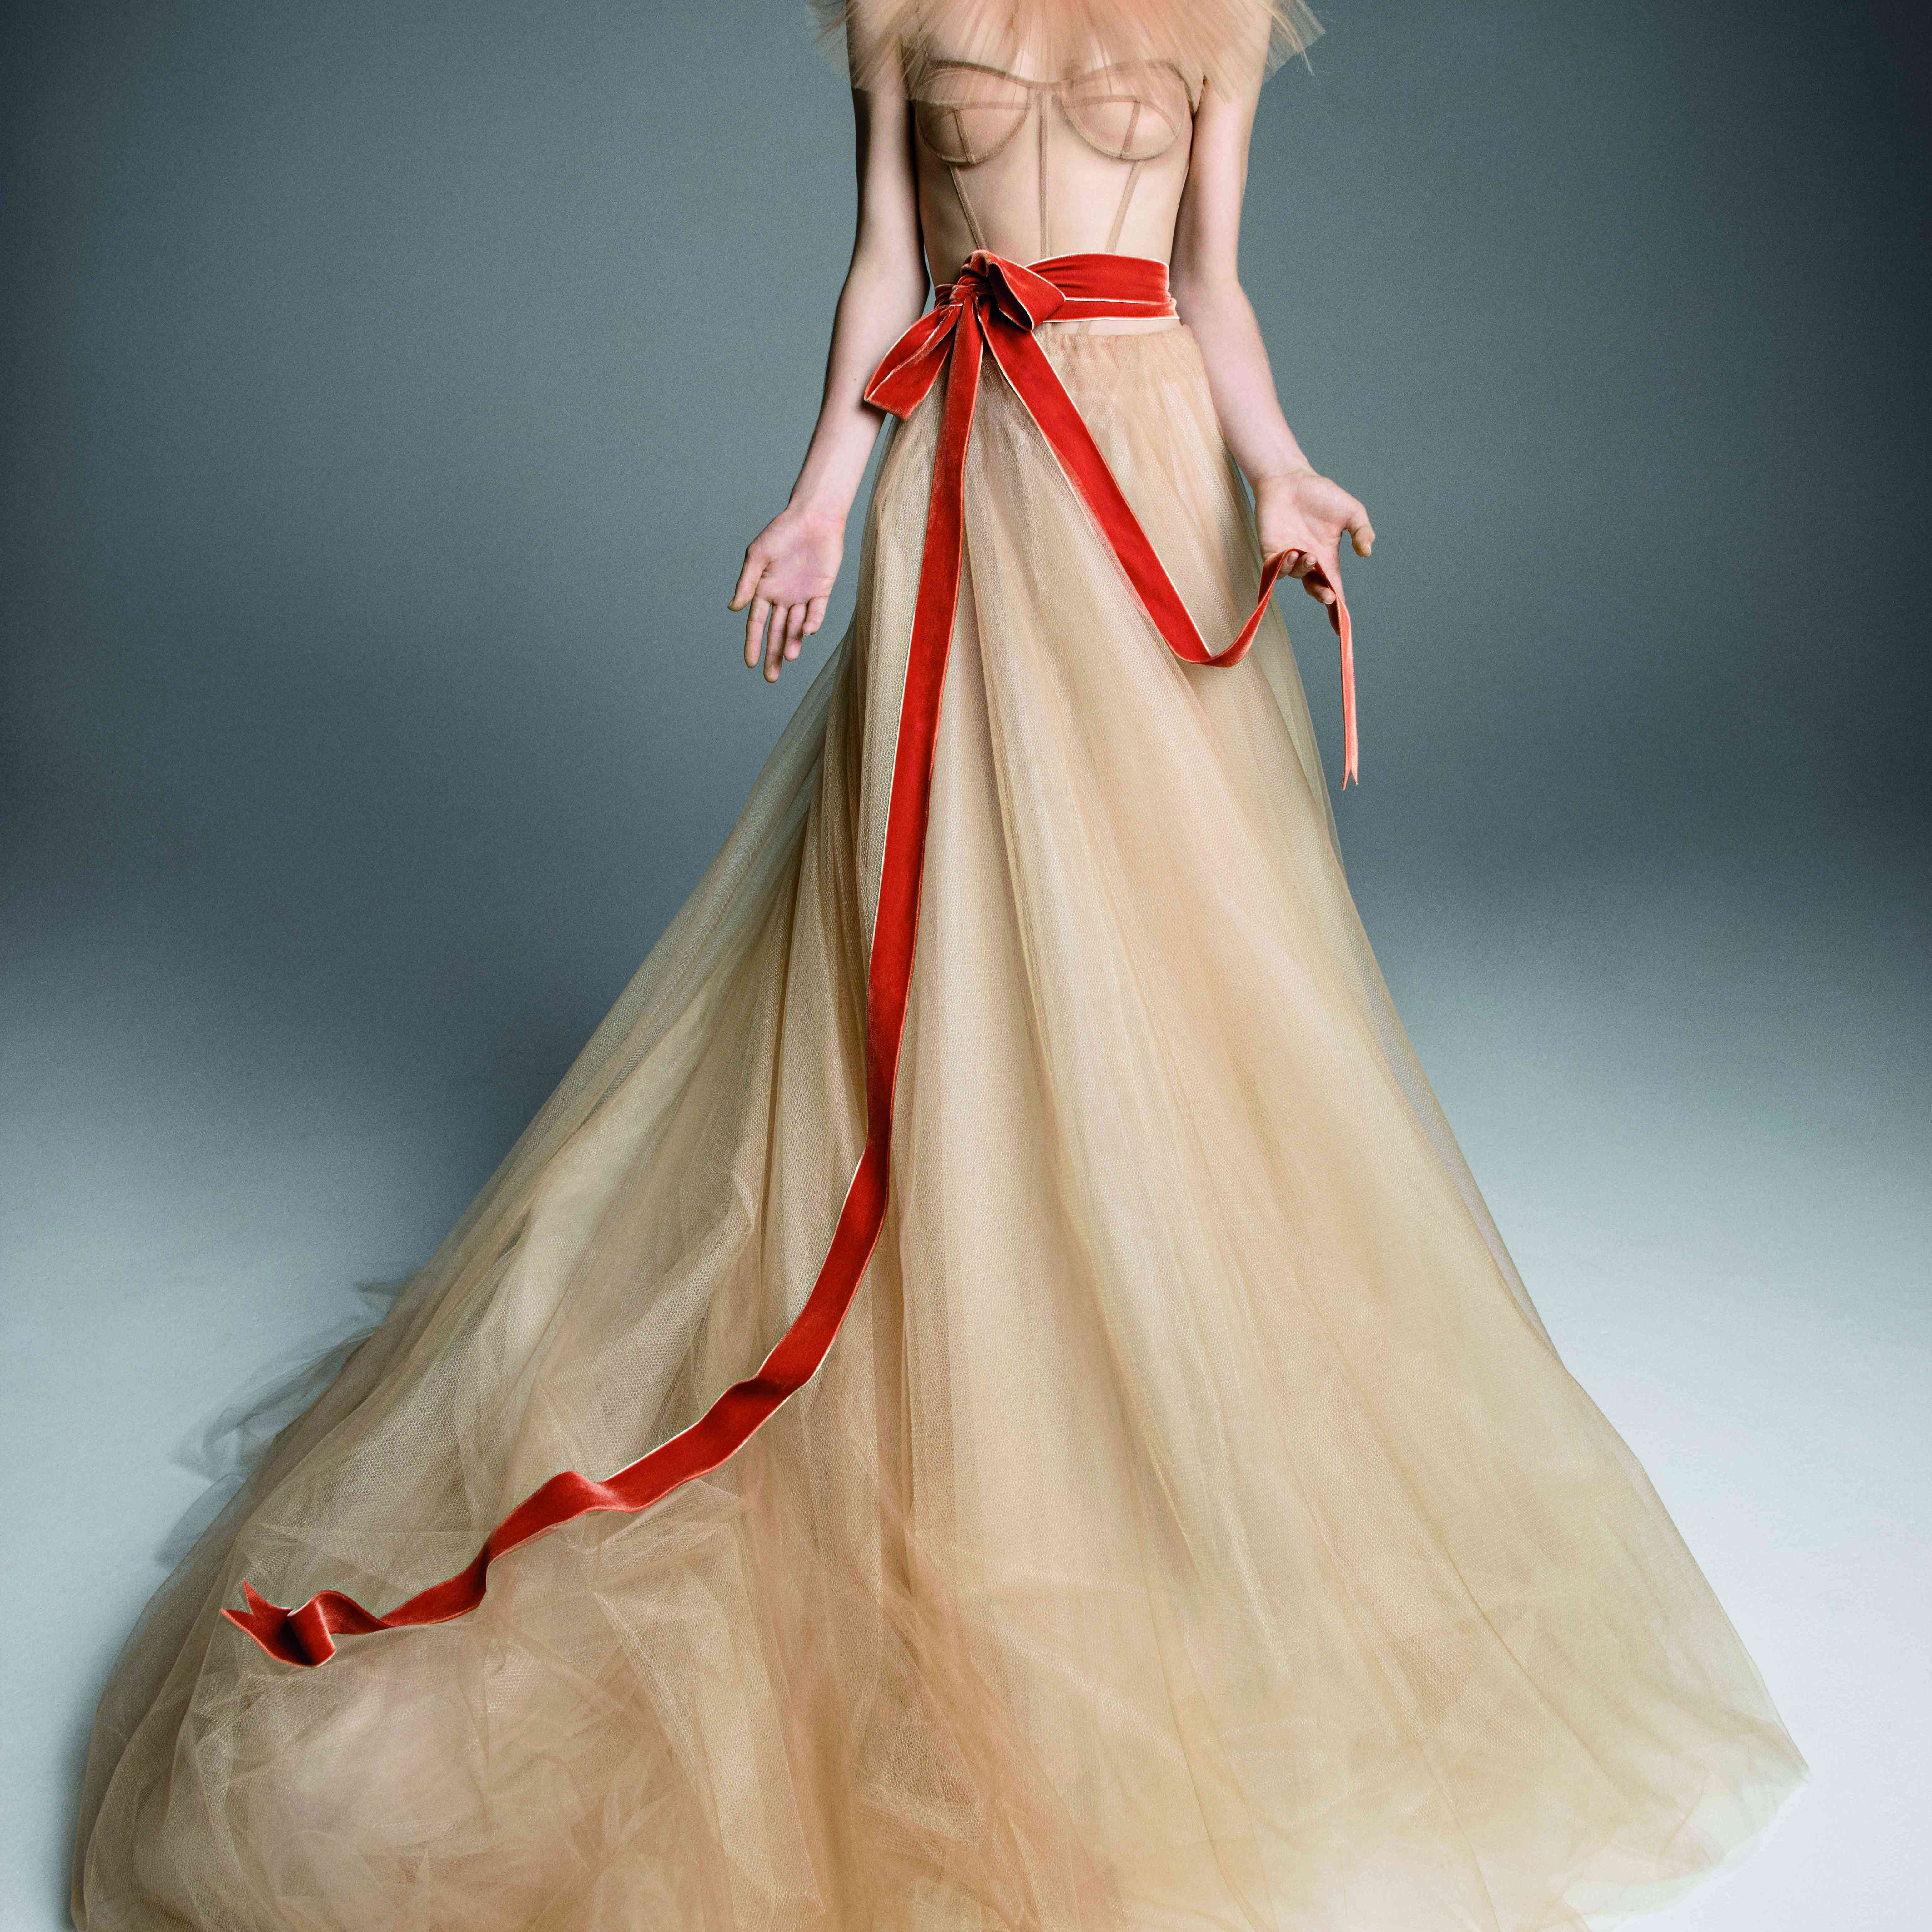 Model in a nude tulle A-line spaghetti strap dress with a corset bodice accented with a red ribbon at the waist